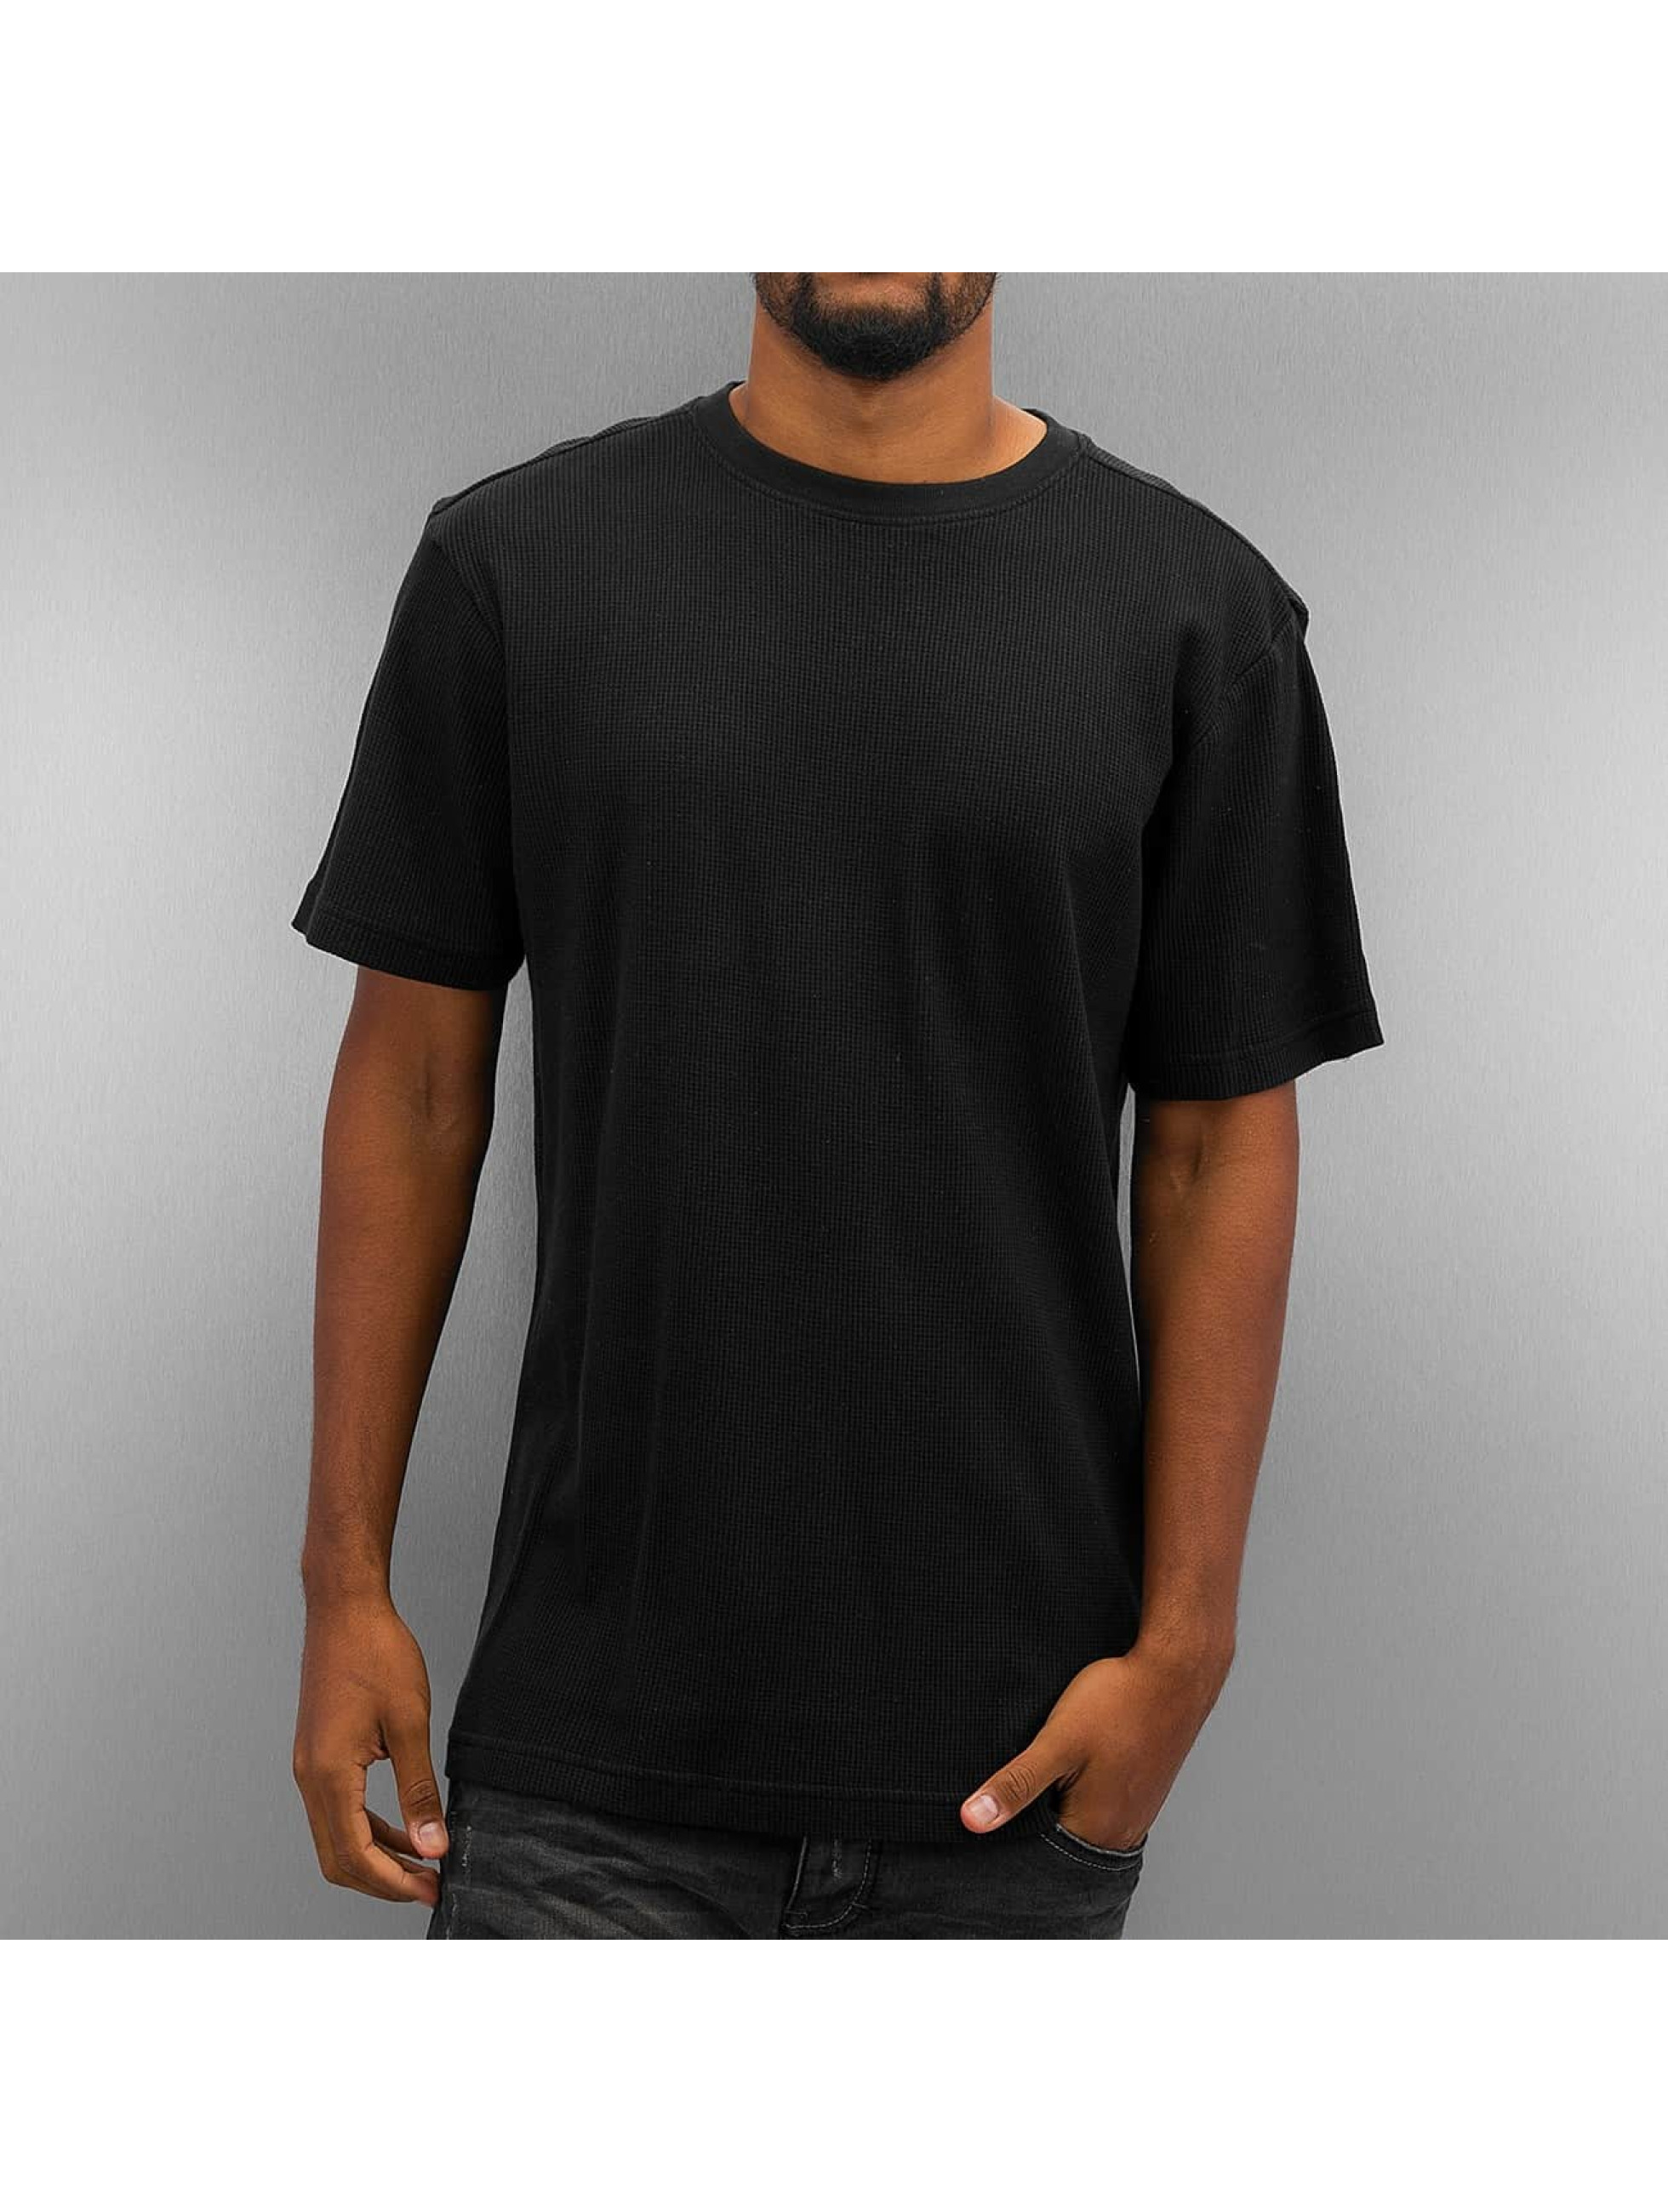 Urban Classics T-Shirt Thermal black